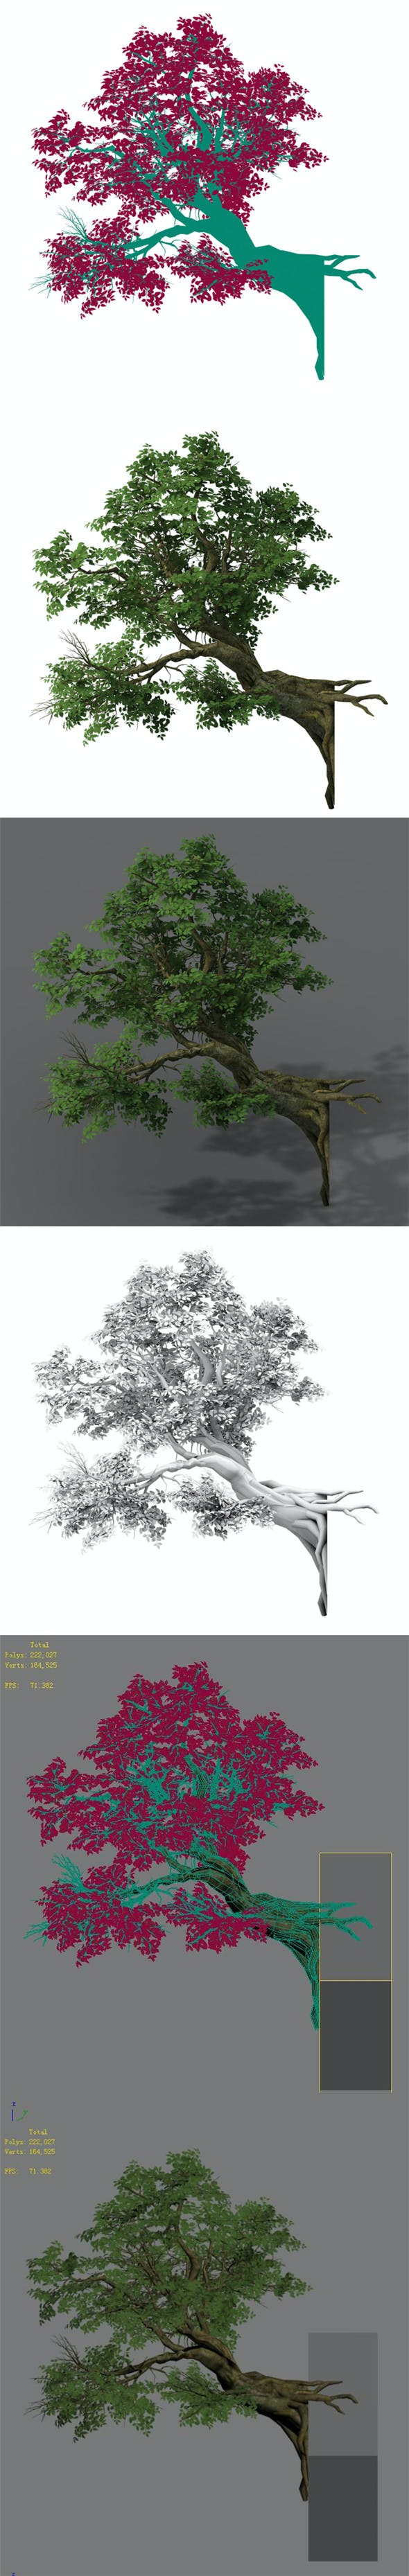 Plant - banyan tree 05 - 3DOcean Item for Sale